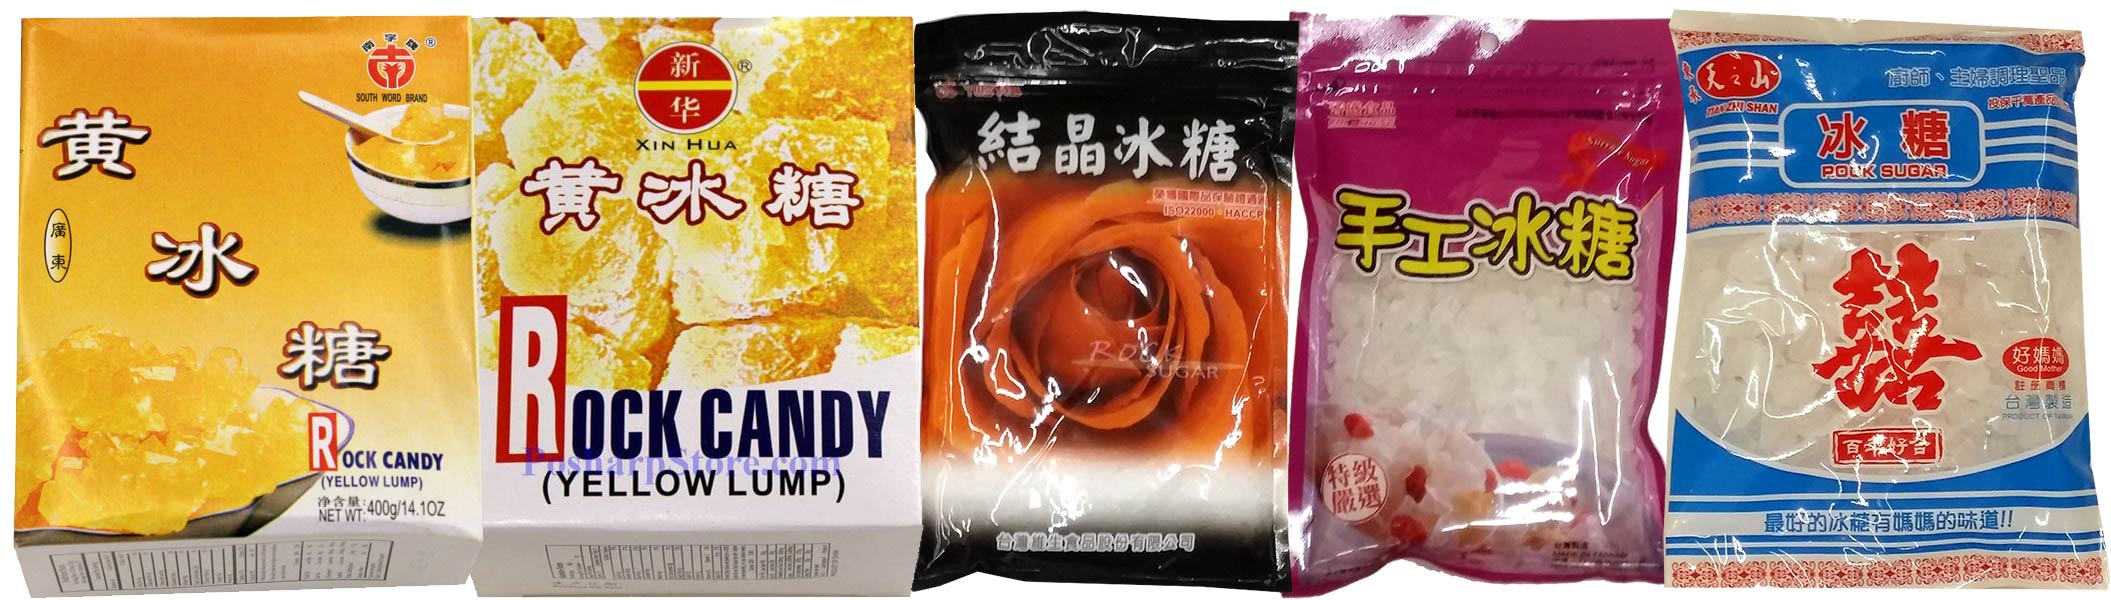 Chinese Rock Sugars in US Supermarkets